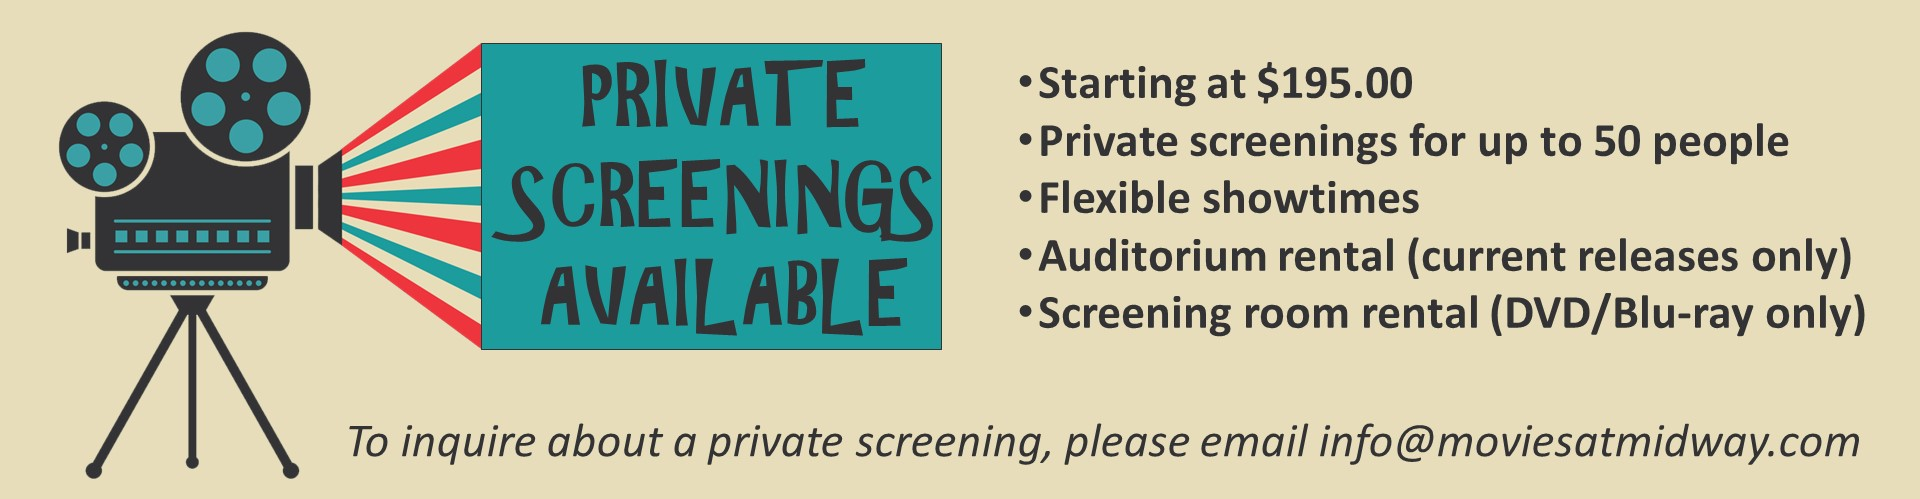 privatescreenings_banner